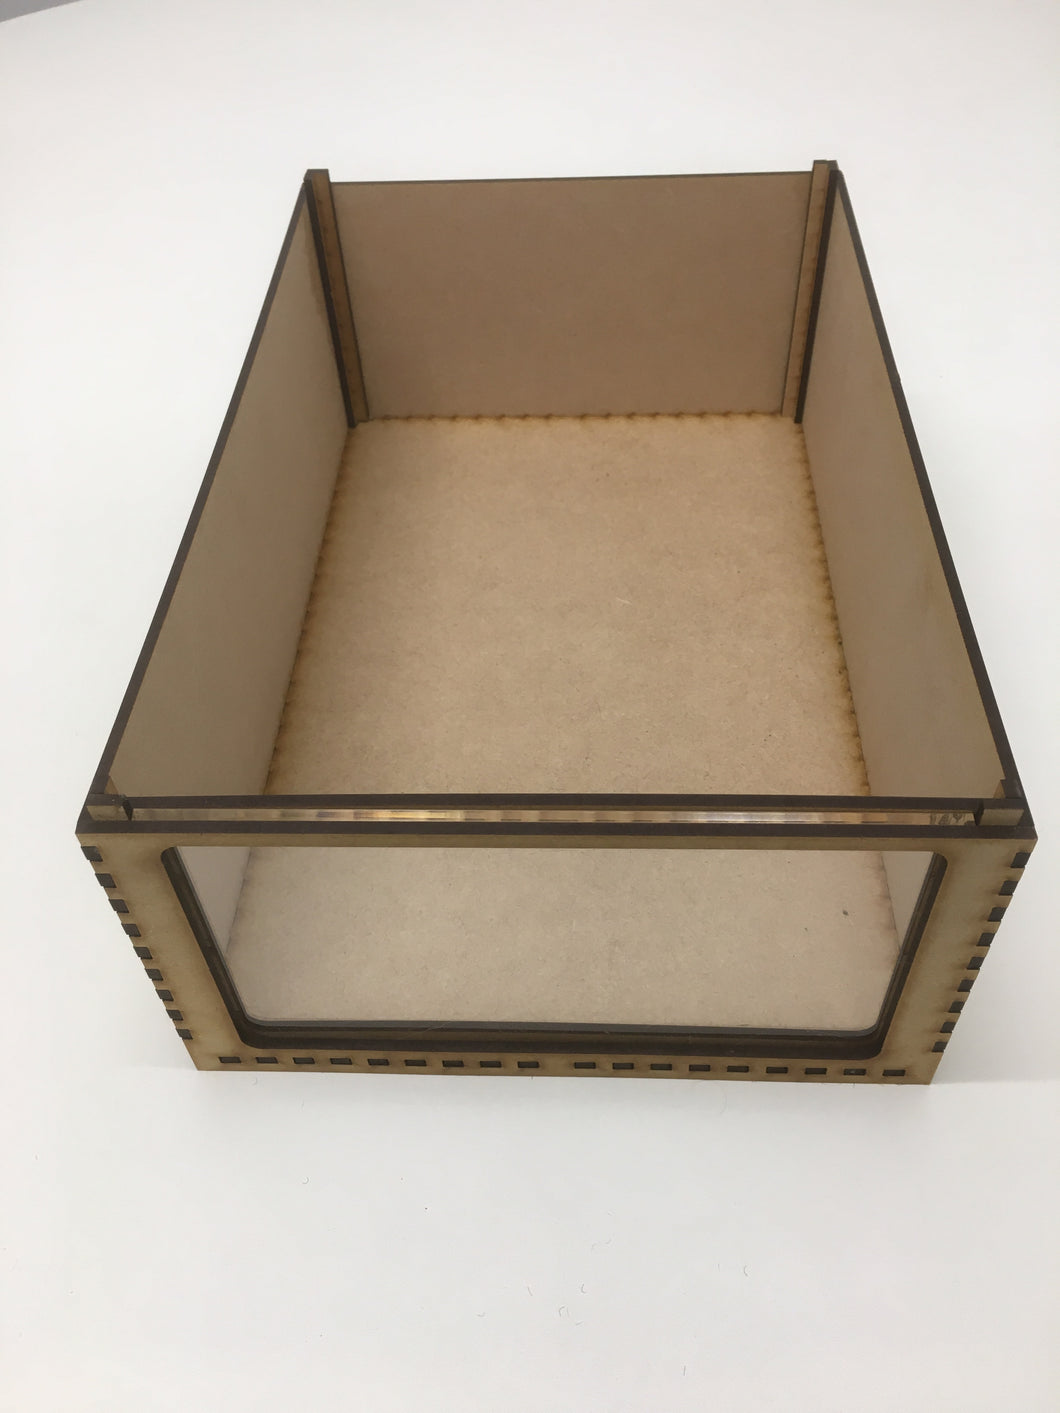 Miniature storage tray with clear acrylic window - 145mm